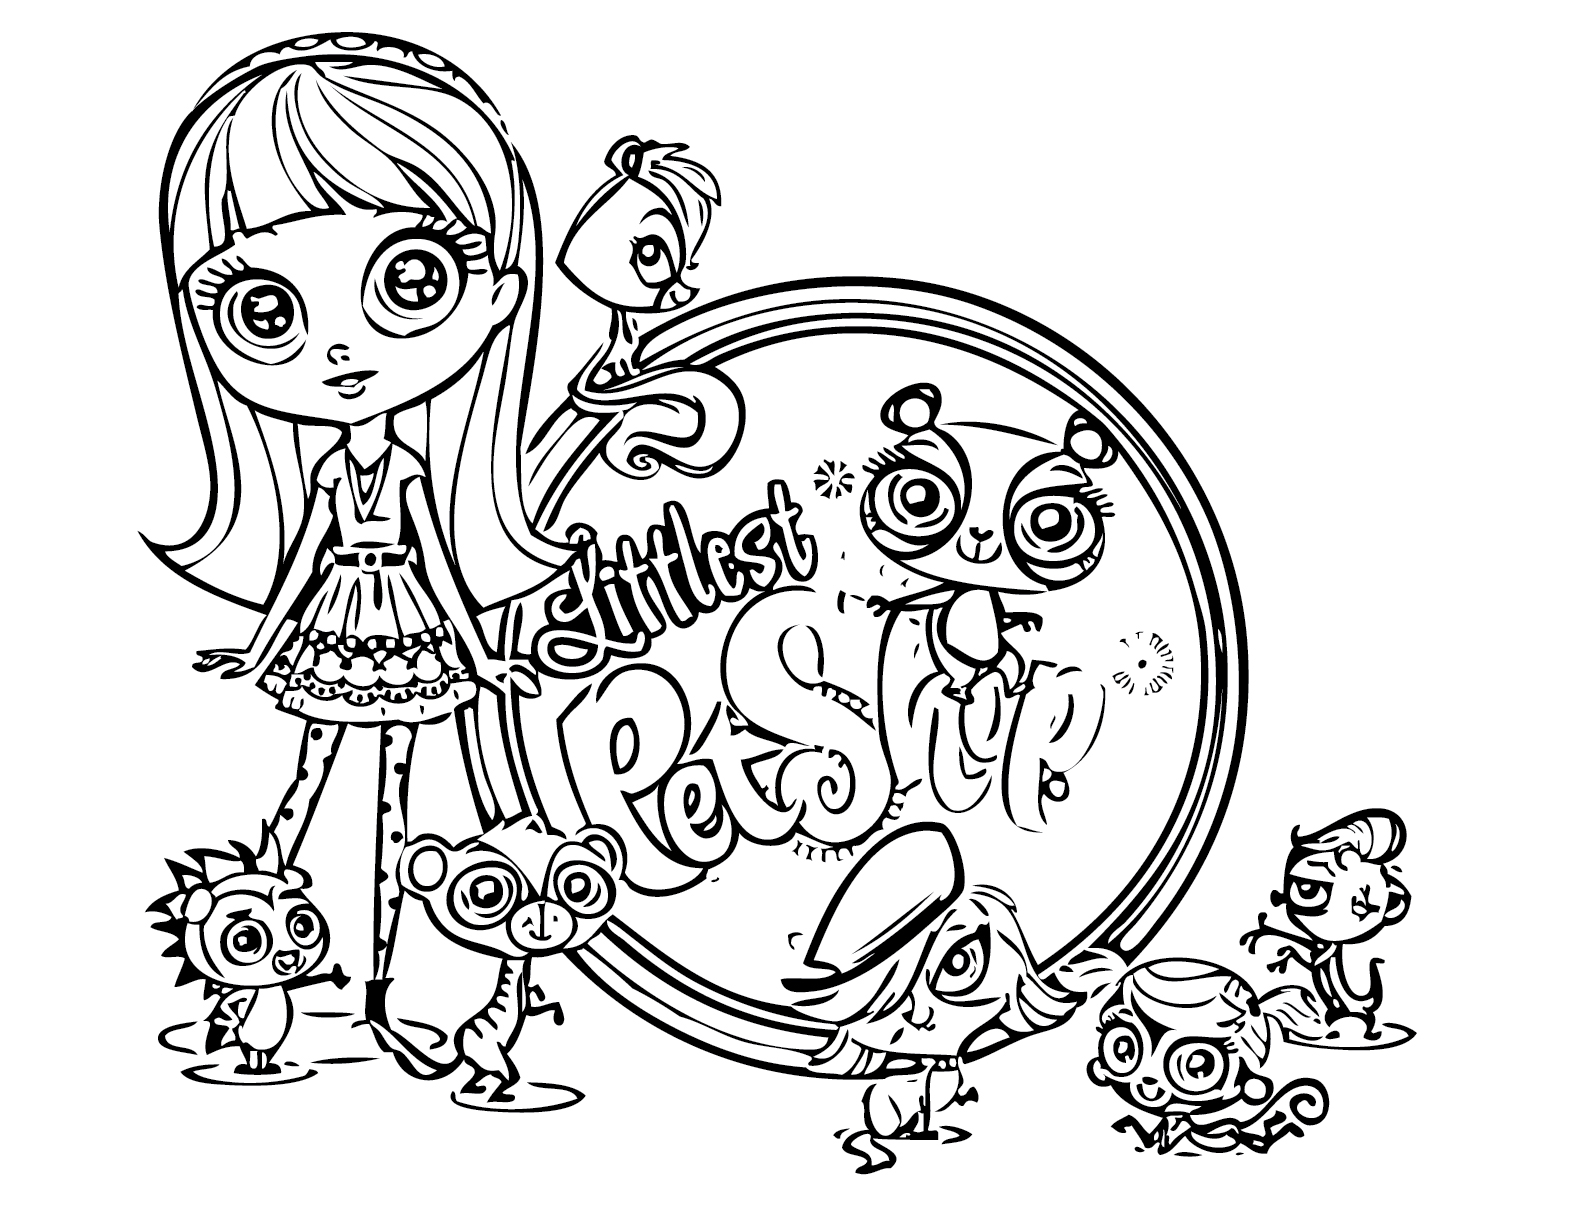 littlest pets shop coloring pages - photo#30